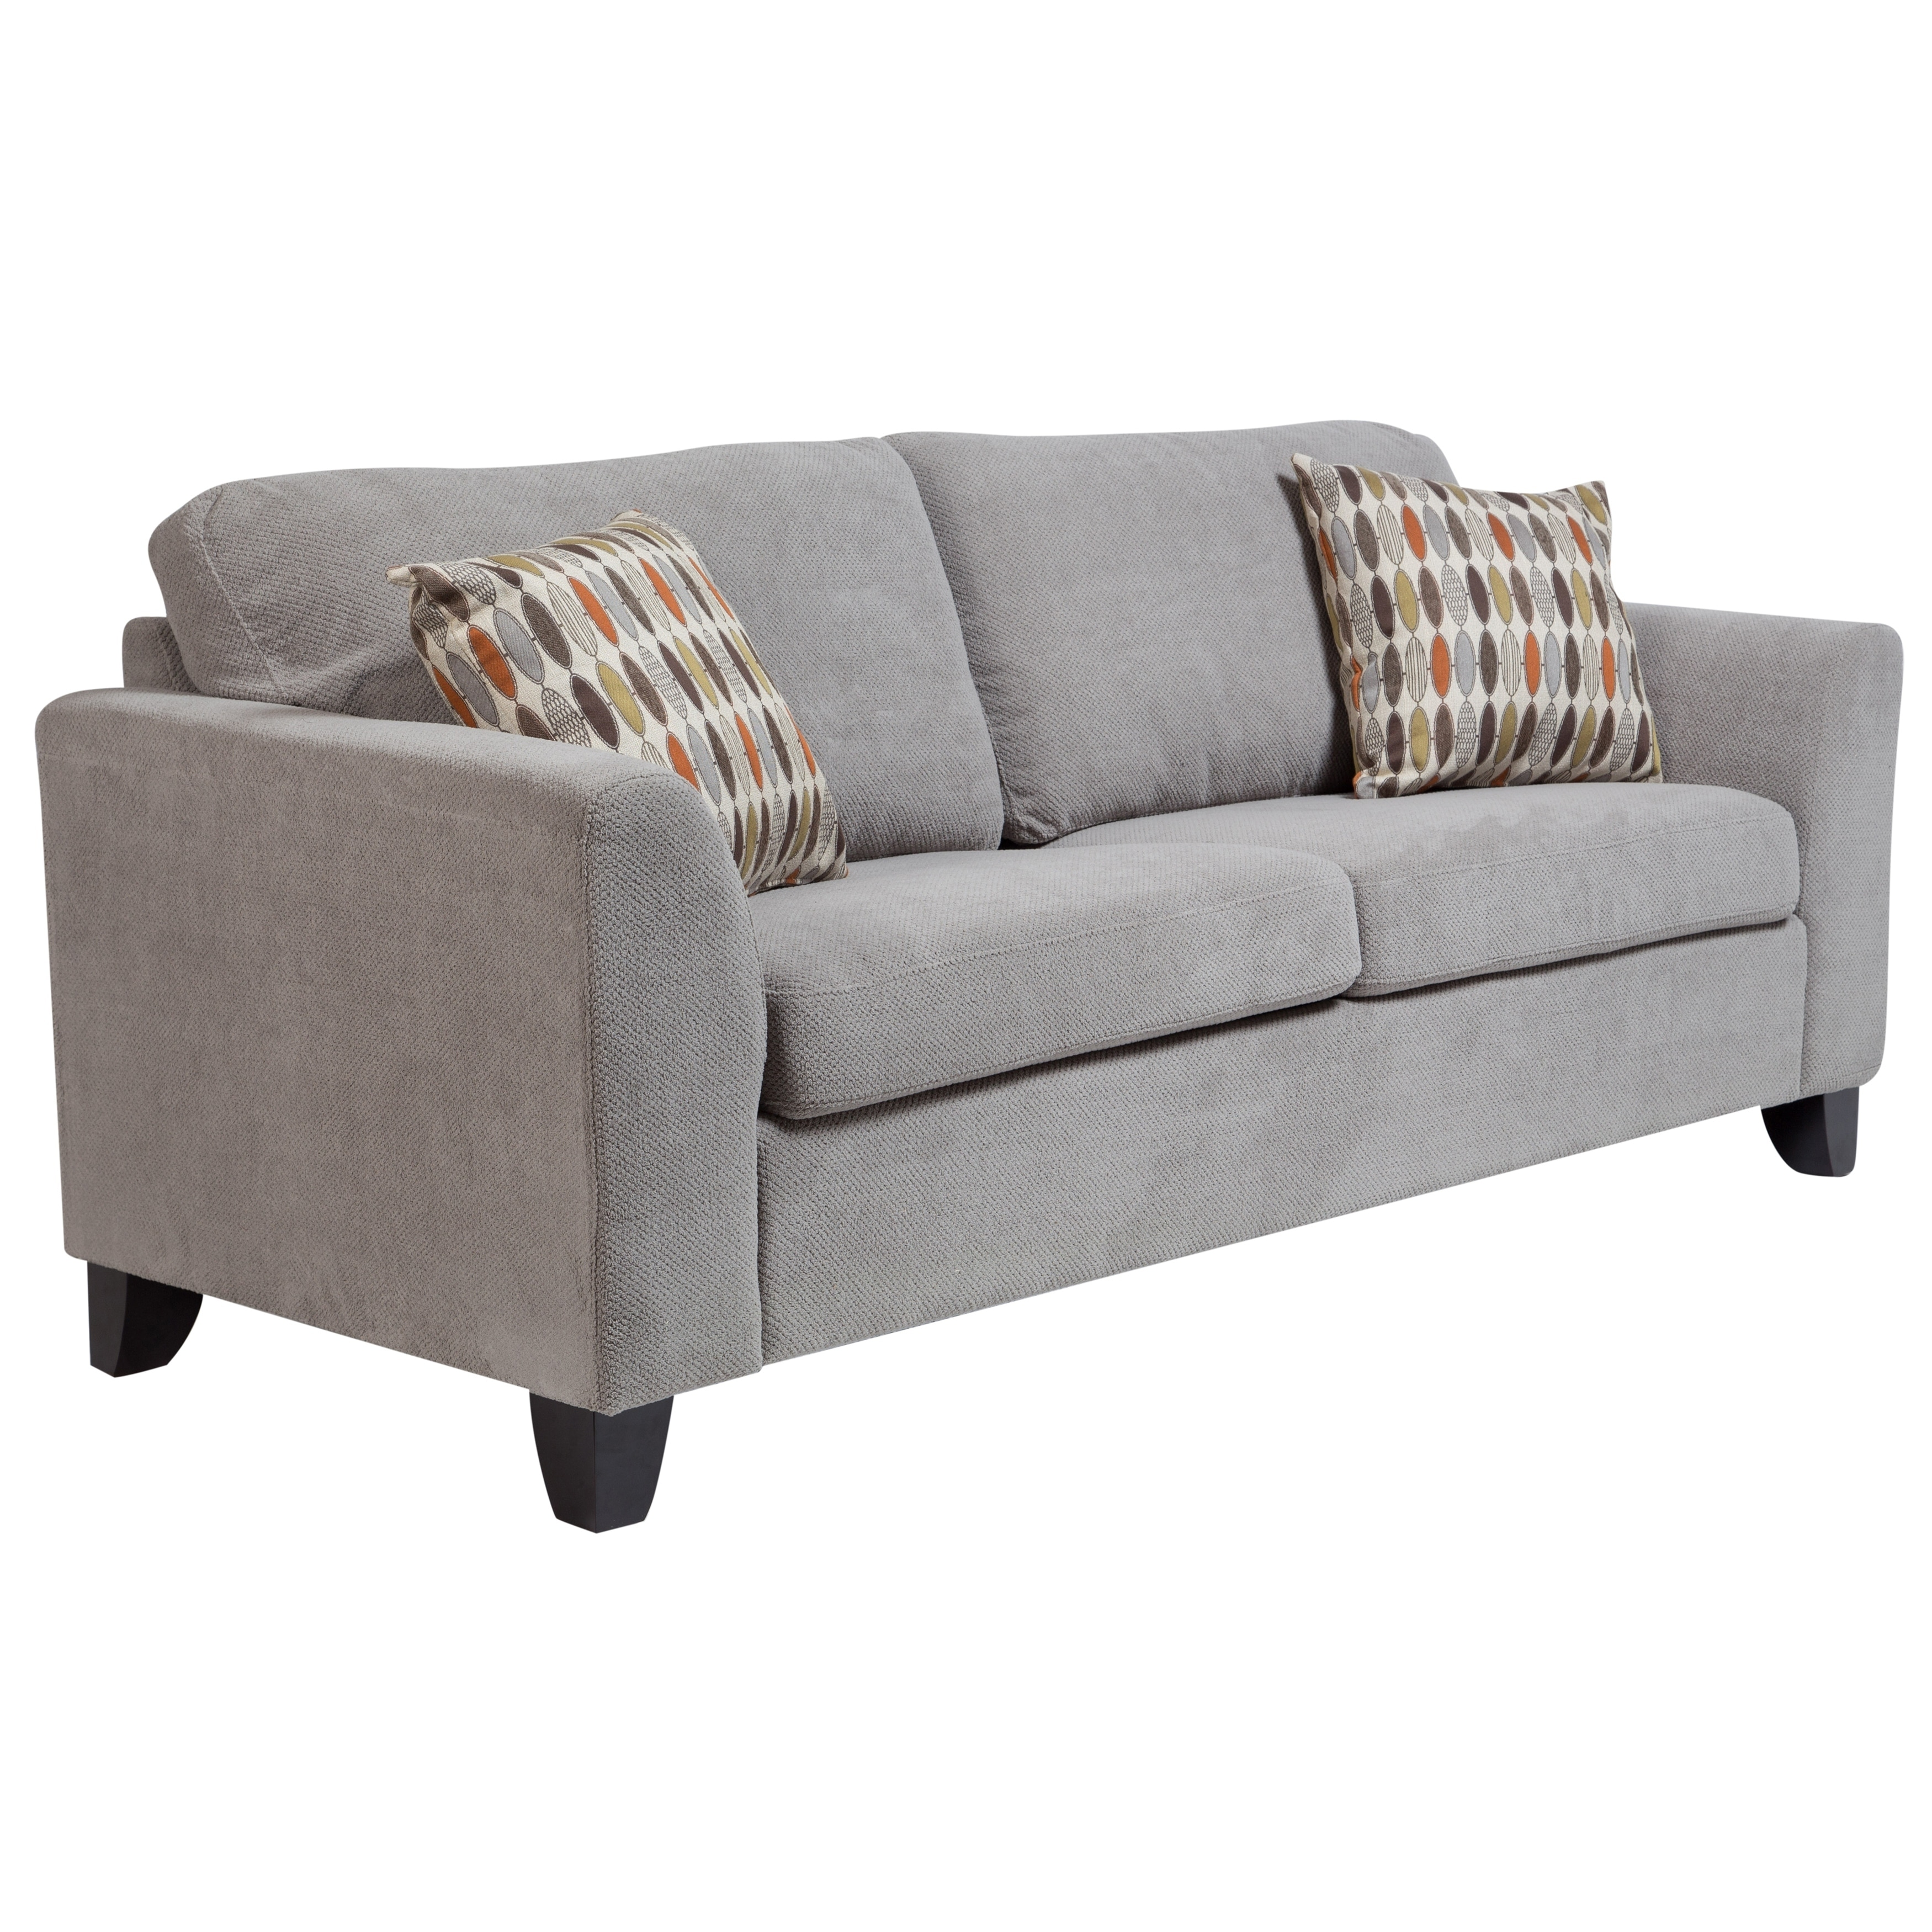 Peachy Brighton Contemporary Memory Foam Sleeper Sofa Dove Gray Gmtry Best Dining Table And Chair Ideas Images Gmtryco